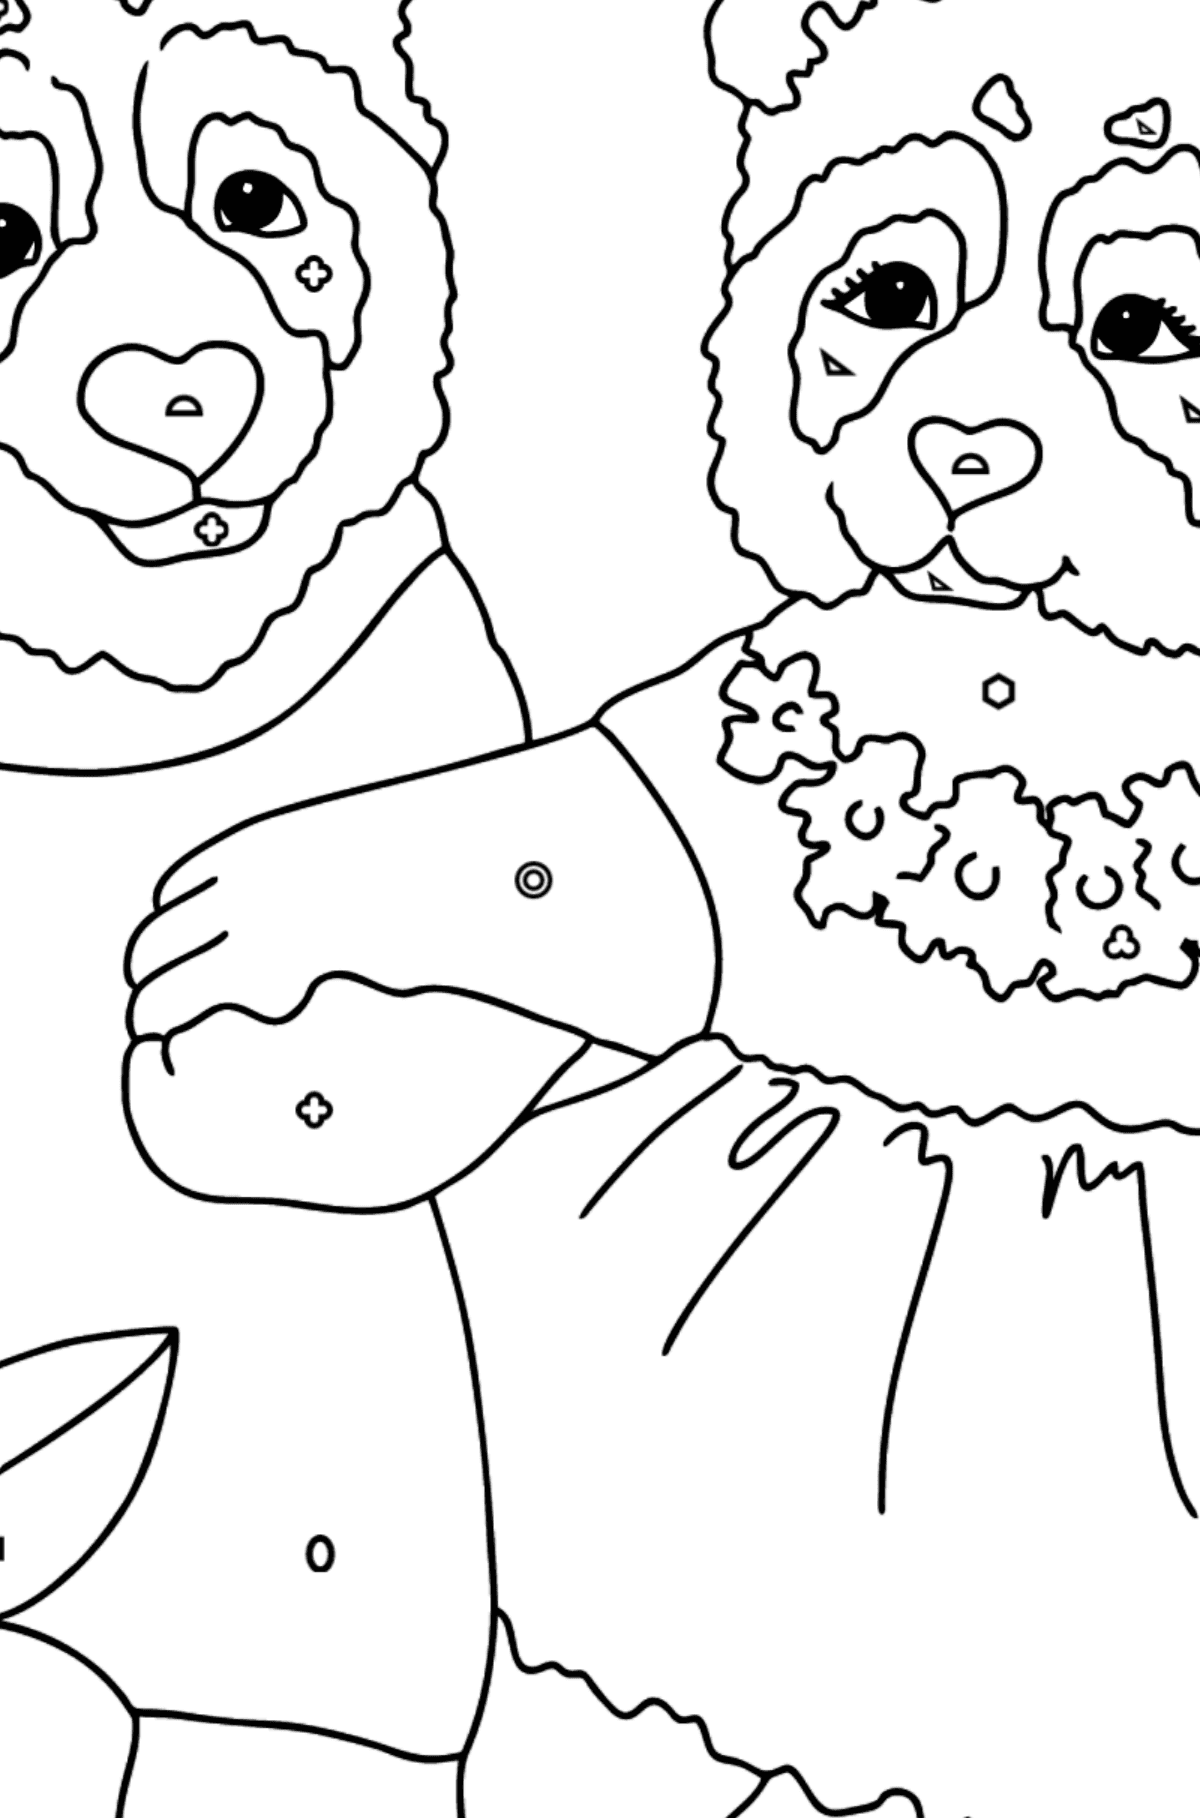 Coloring Page - Pandas are Taking a Walk - Coloring by Geometric Shapes for Kids